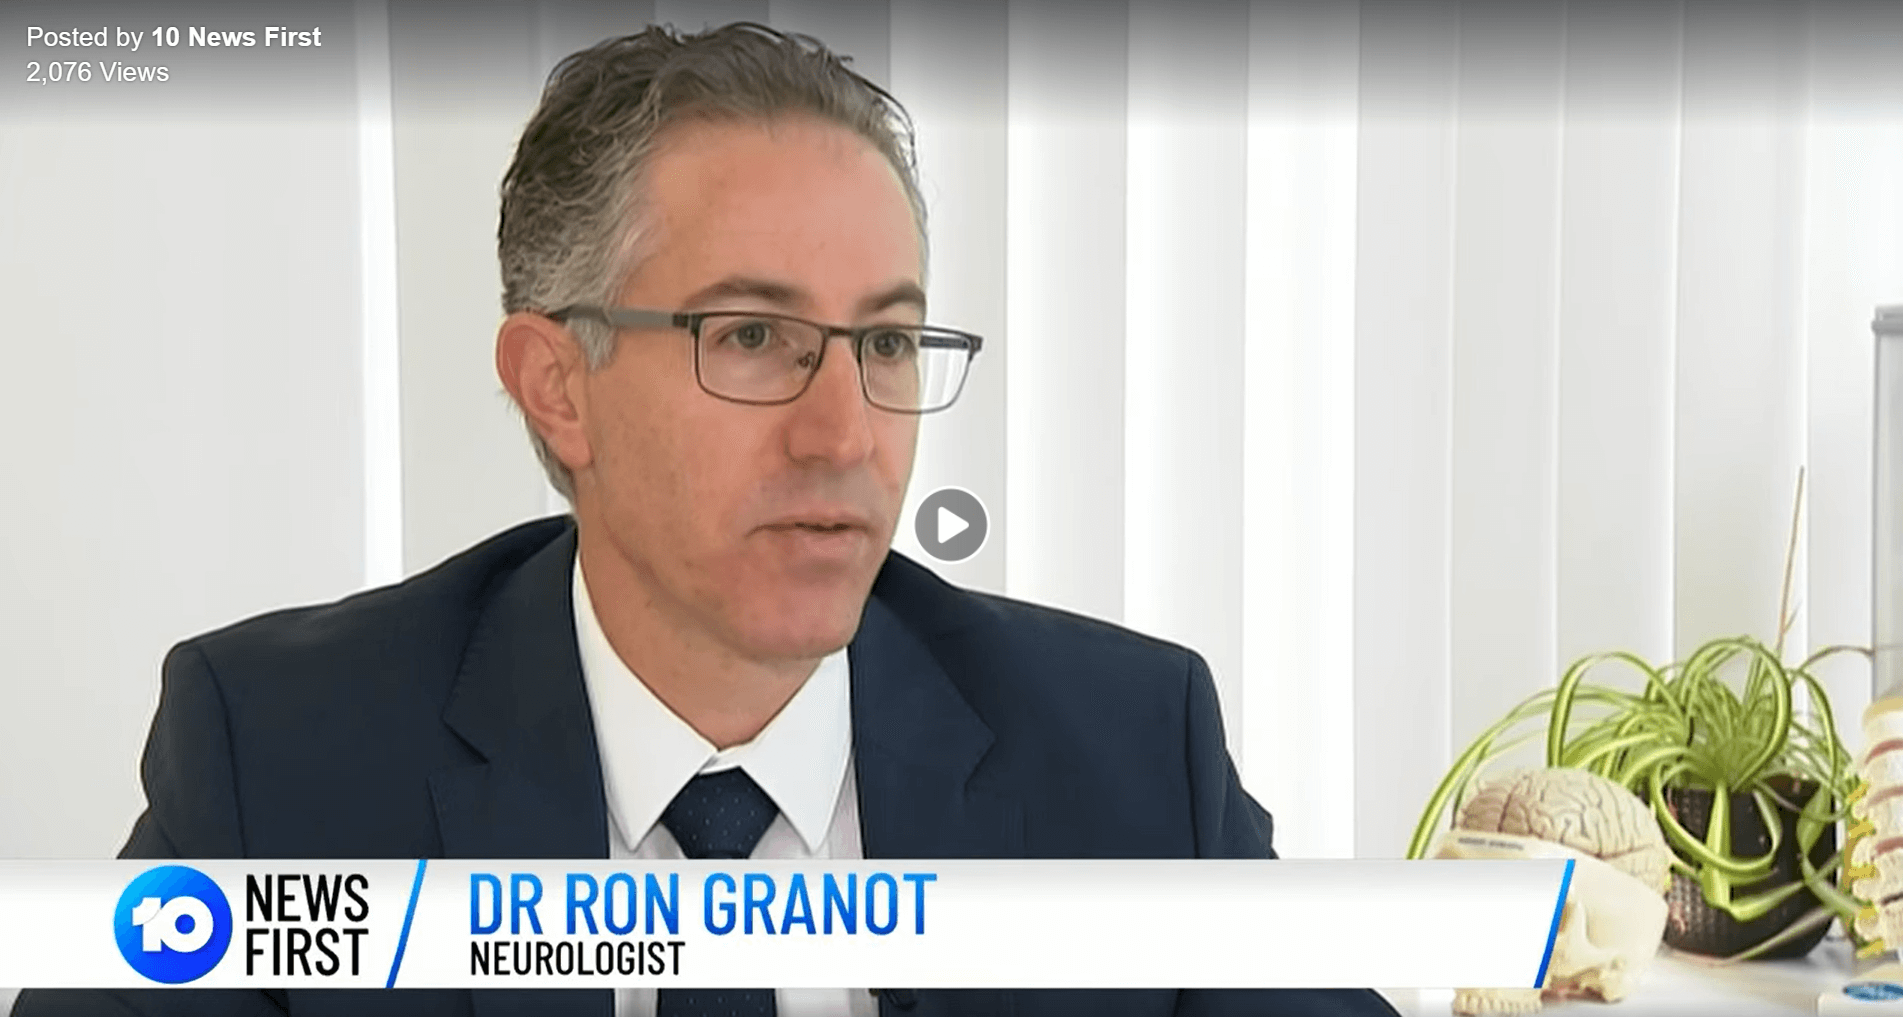 Dr Ron Granot on Channel 10 News, talking about Migraine